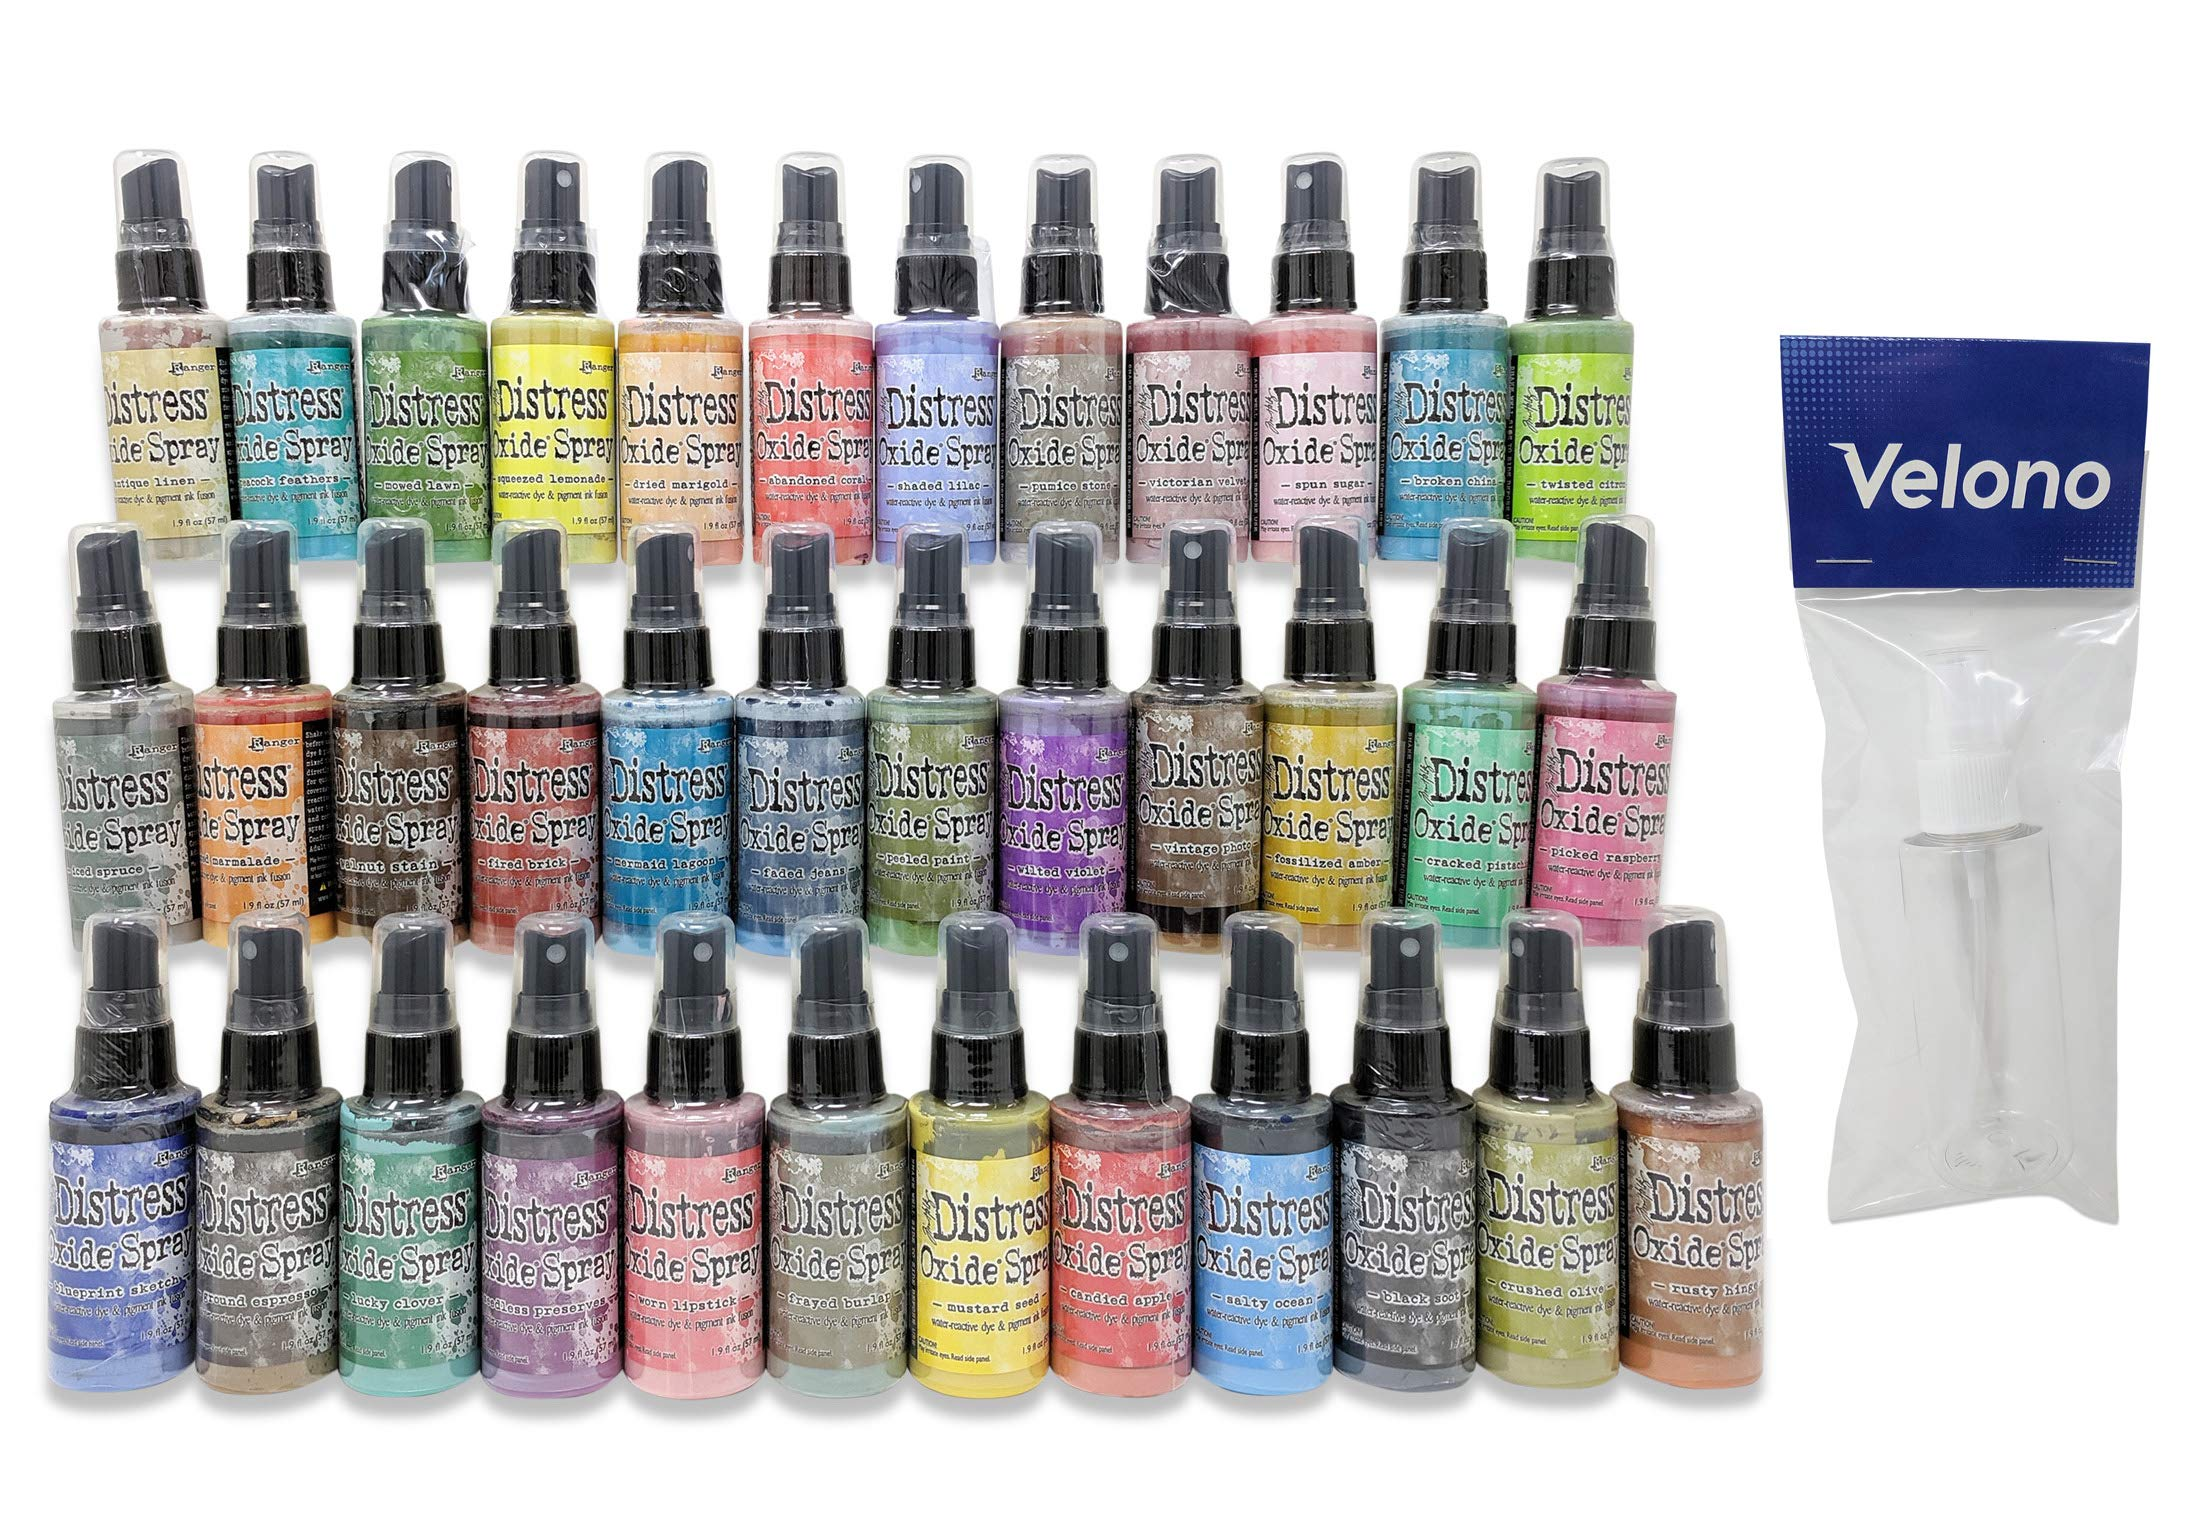 Ranger Tim Holtz Distress Oxide Spray 37-Piece Bundle, 36x Distress Oxide Ink Spray 2oz Bottles (Releases 1, 2 and 3), 1x Velono 2oz Clear Spray Bottle by Velono